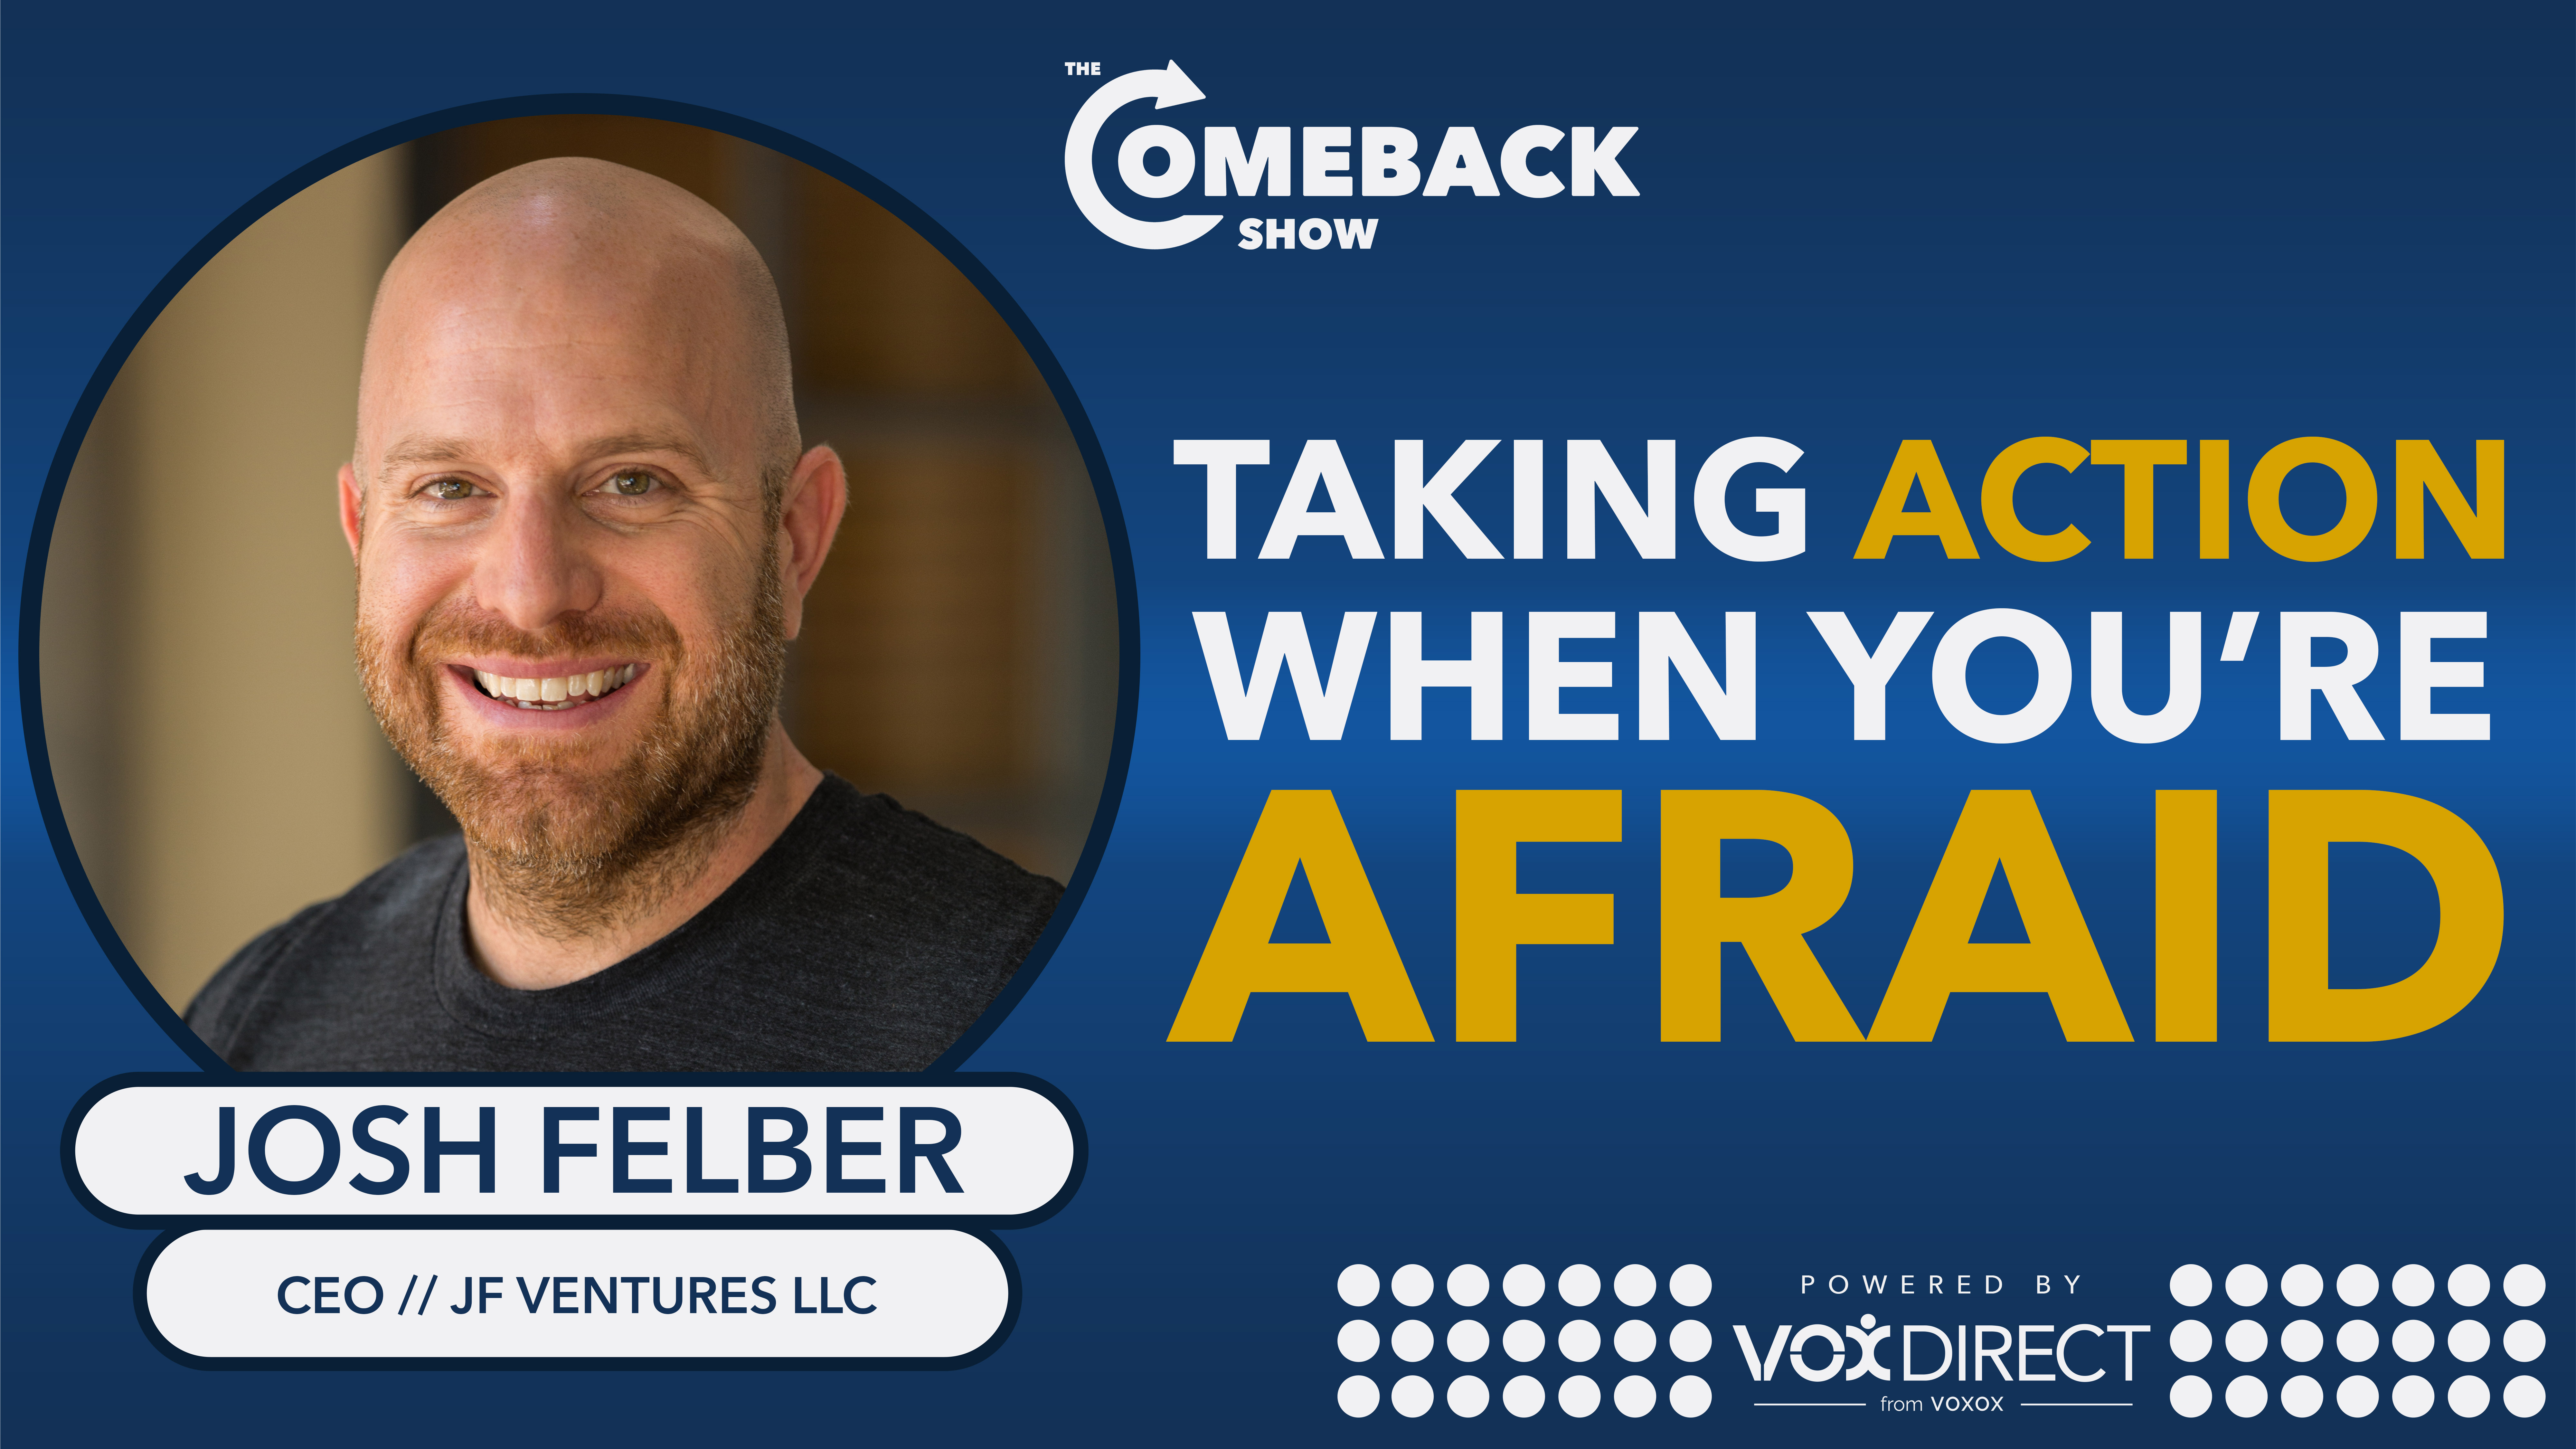 Taking Action When You're Afraid